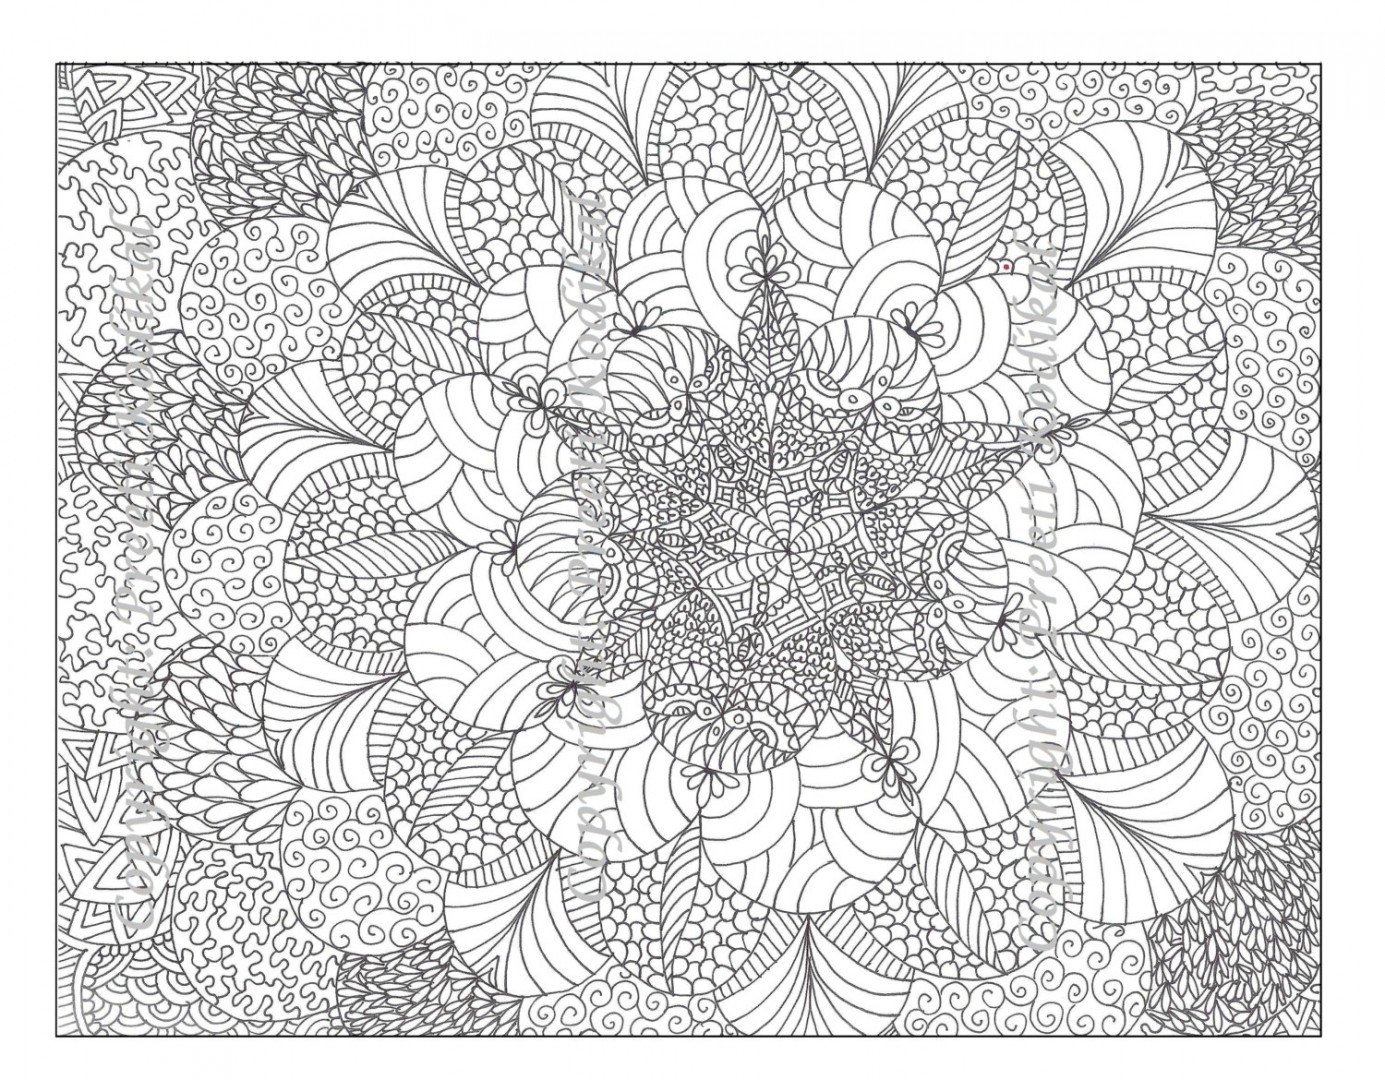 Http://colorings.co/printable-Detailed-Pattern-Coloring-Pages intended for Detailed Pattern Coloring Pages 29461